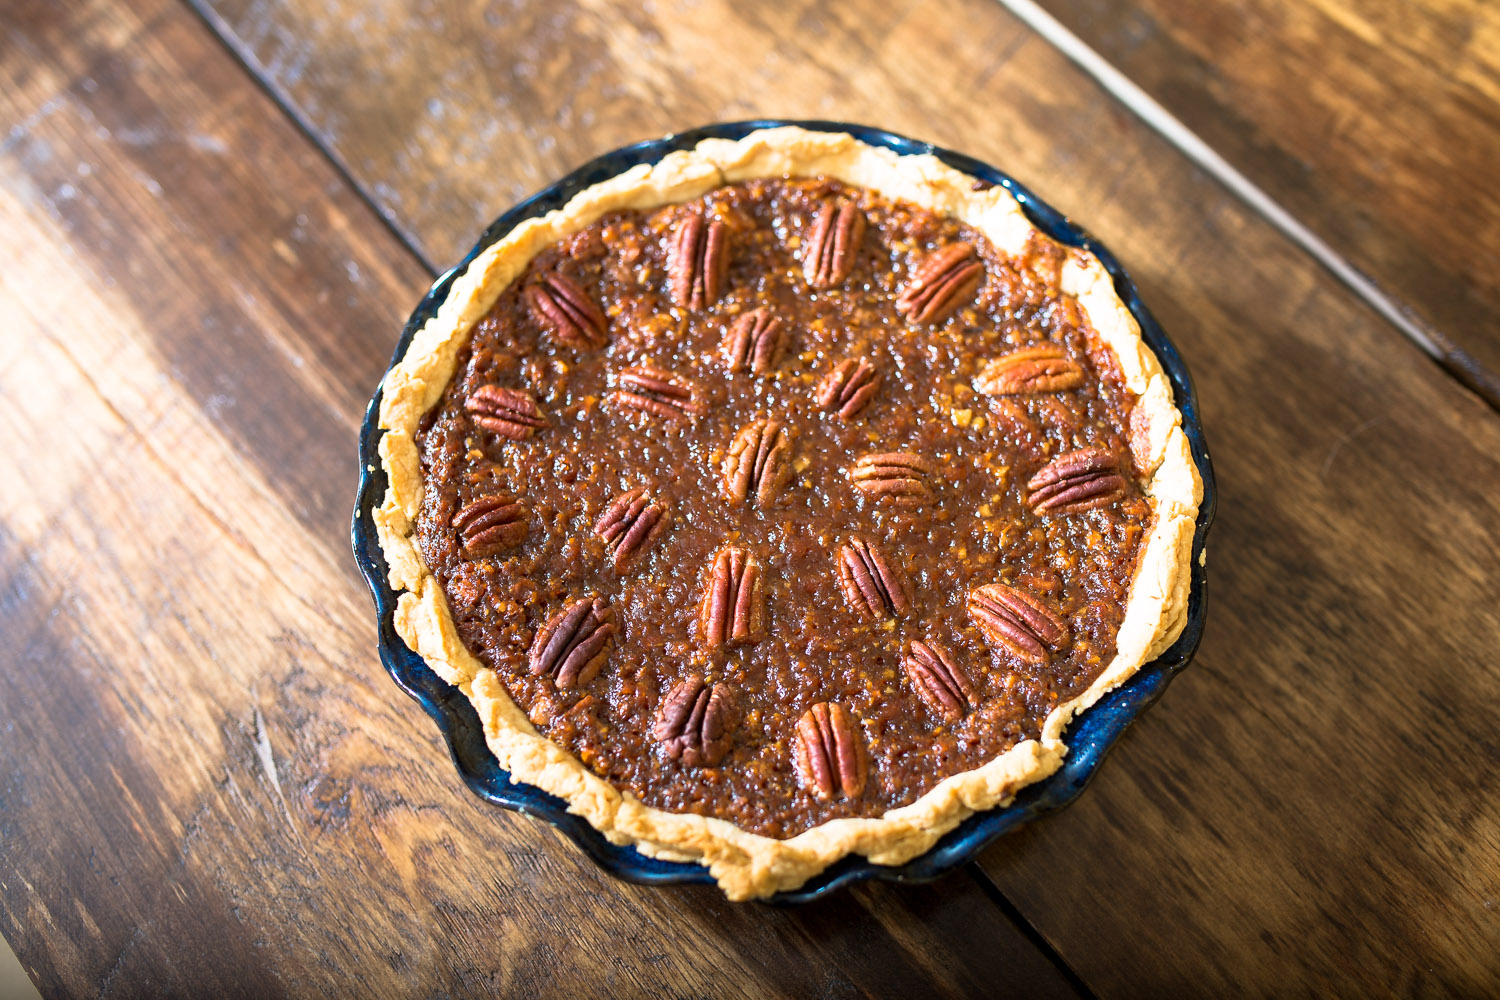 Vegan old-fashioned pecan pie from The Spoon + Shovel